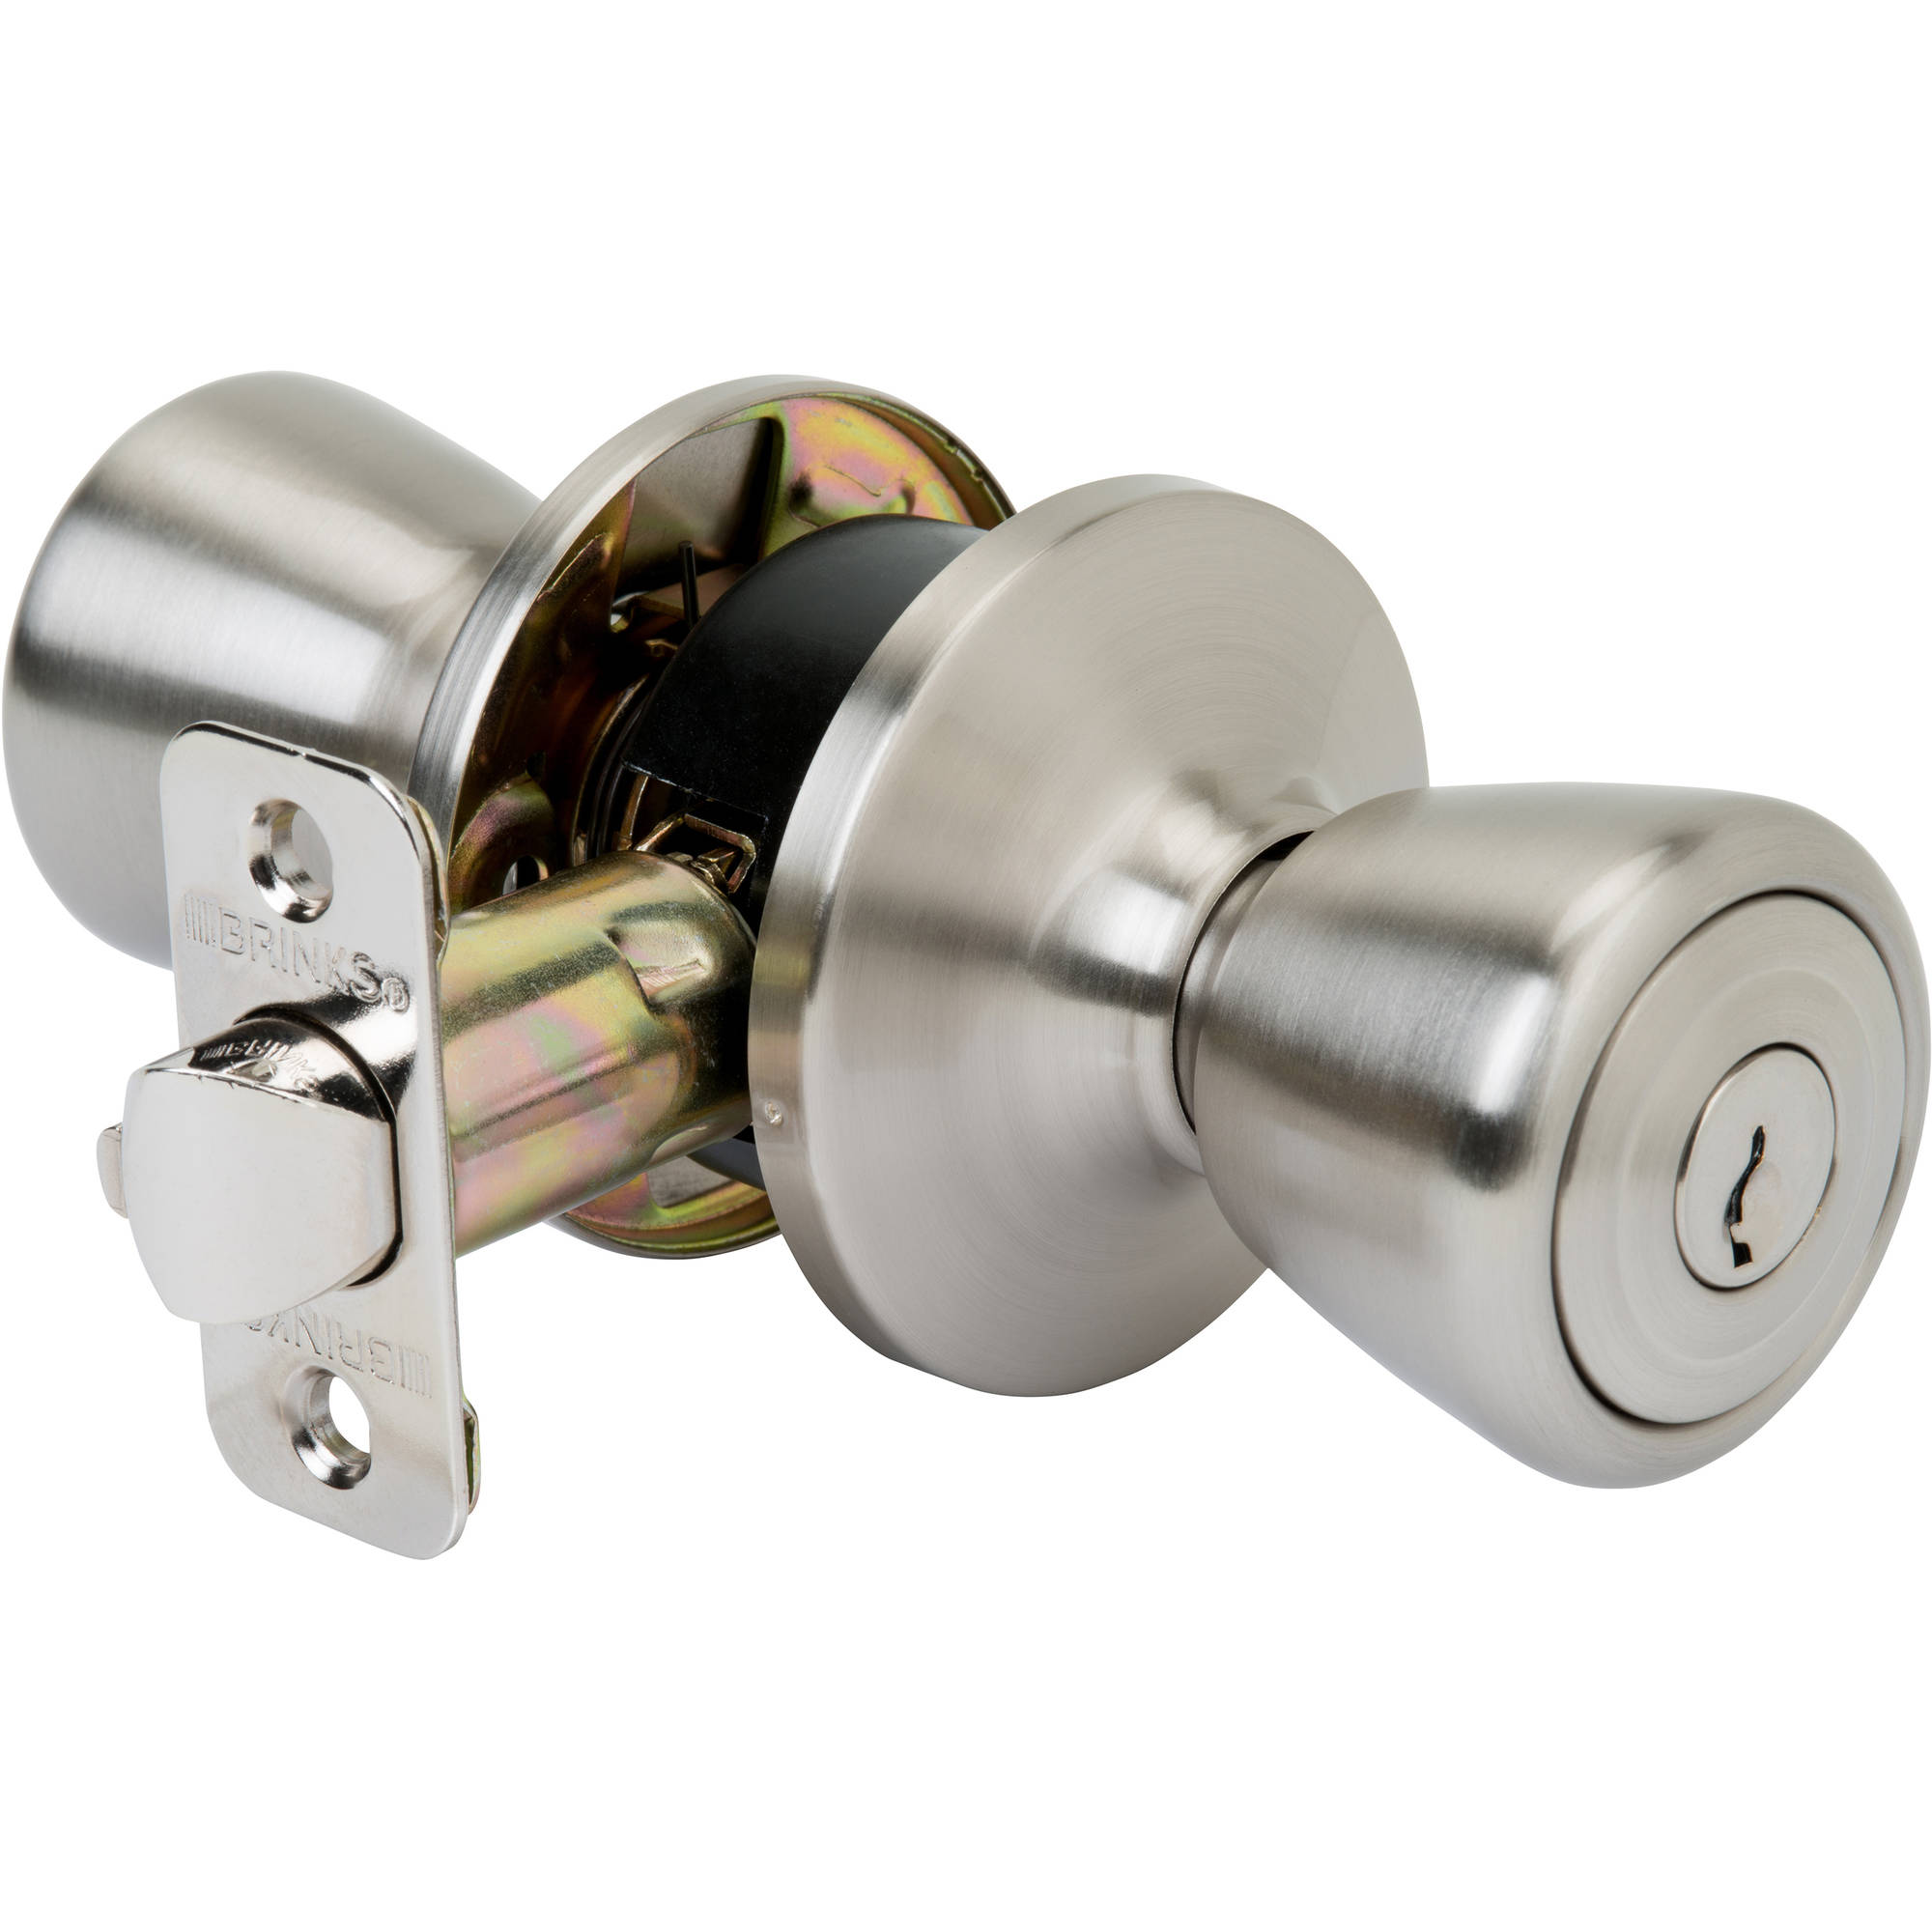 Brinks Tulip Style Keyed Entry Door Knob Satin Nickel